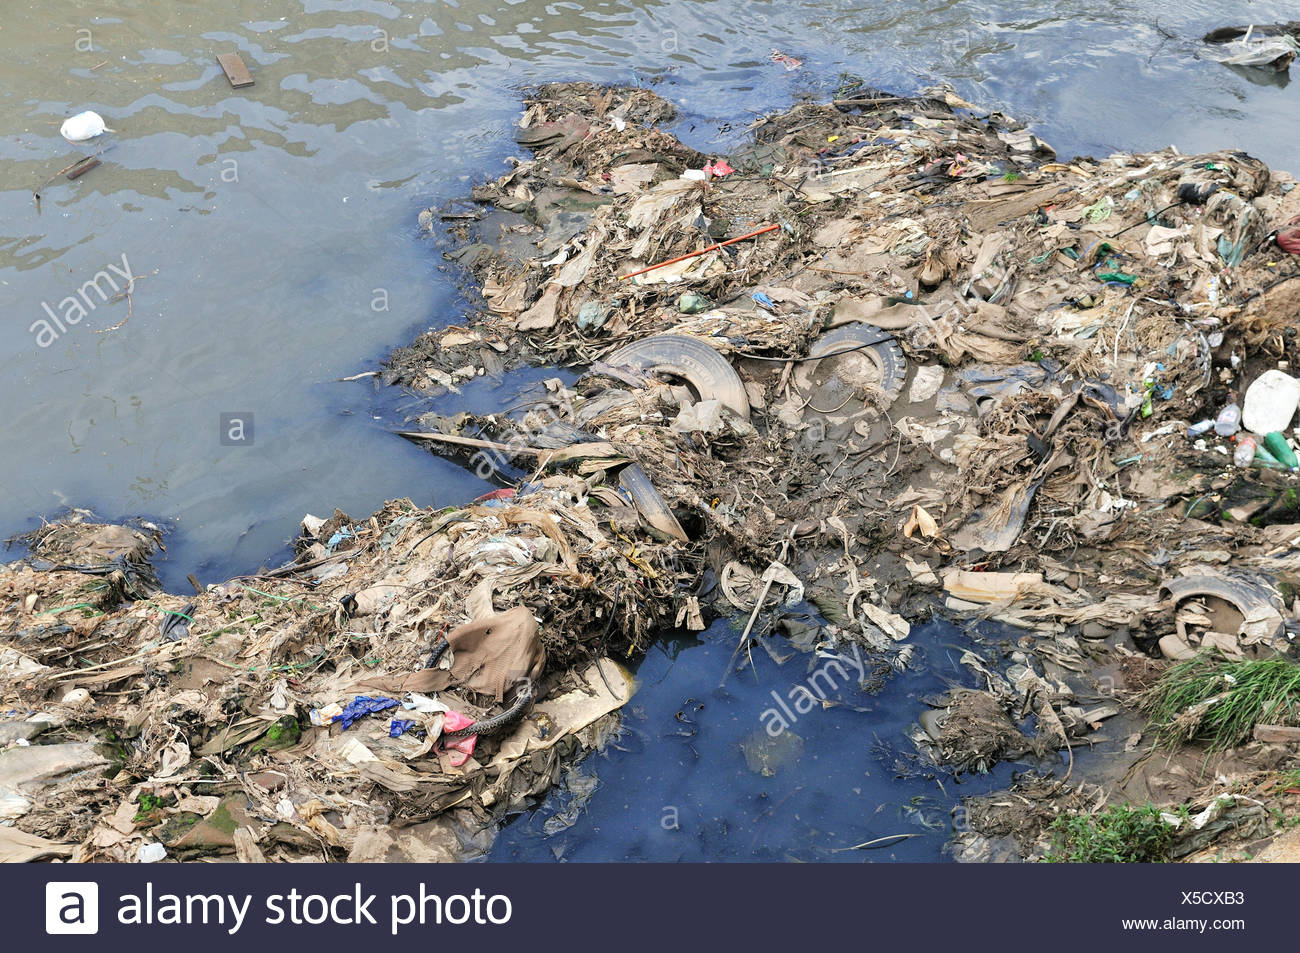 Pollution, garbage polluting the Rio Tamanduatei River, Sao Paulo, Brazil, South America - Stock Image